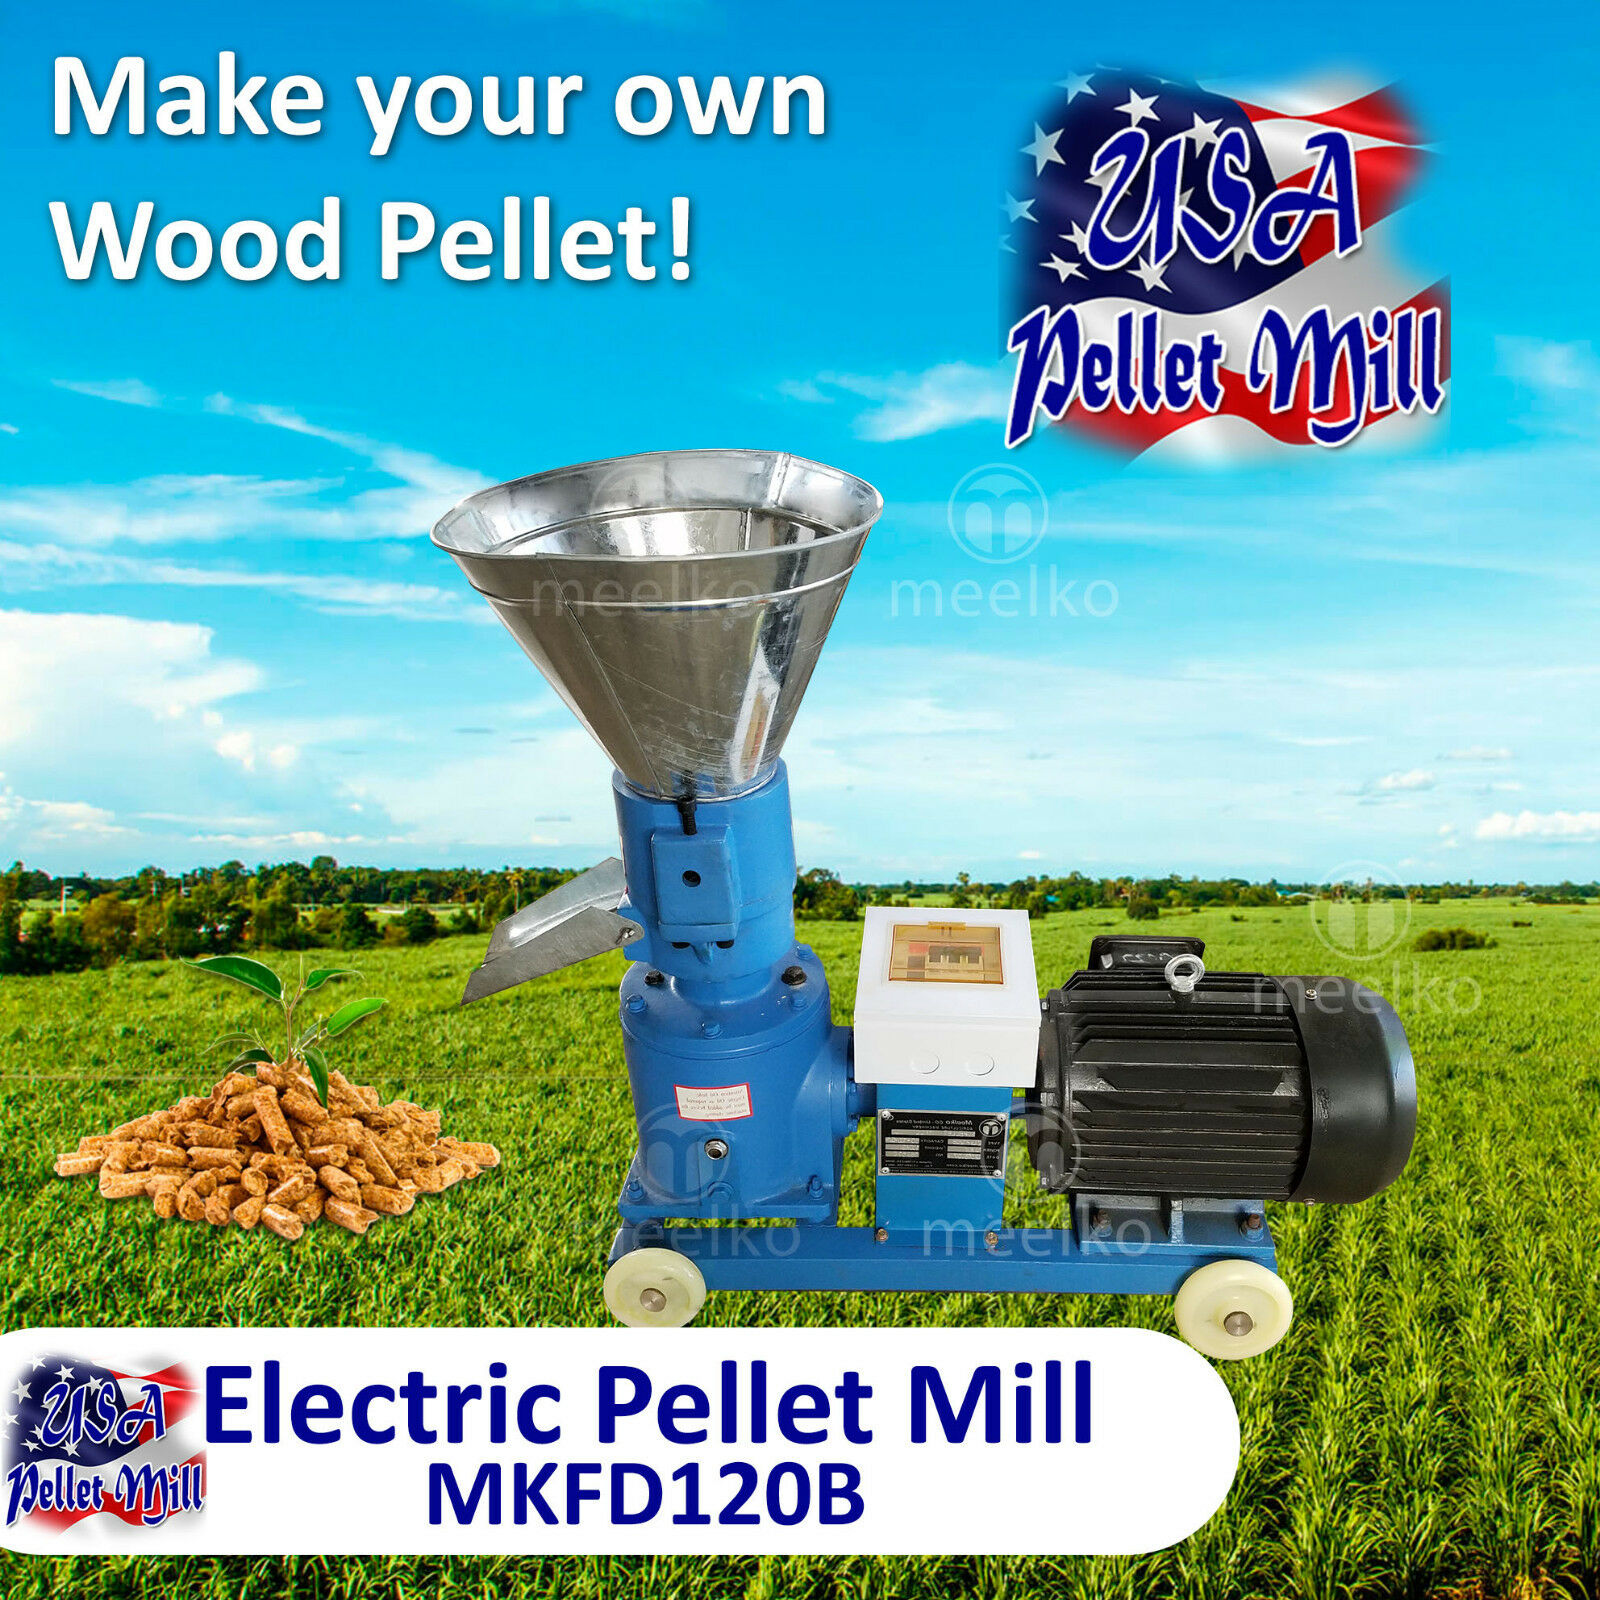 Photo Electric Pellet Mill For Wood - MKFD120B - USA